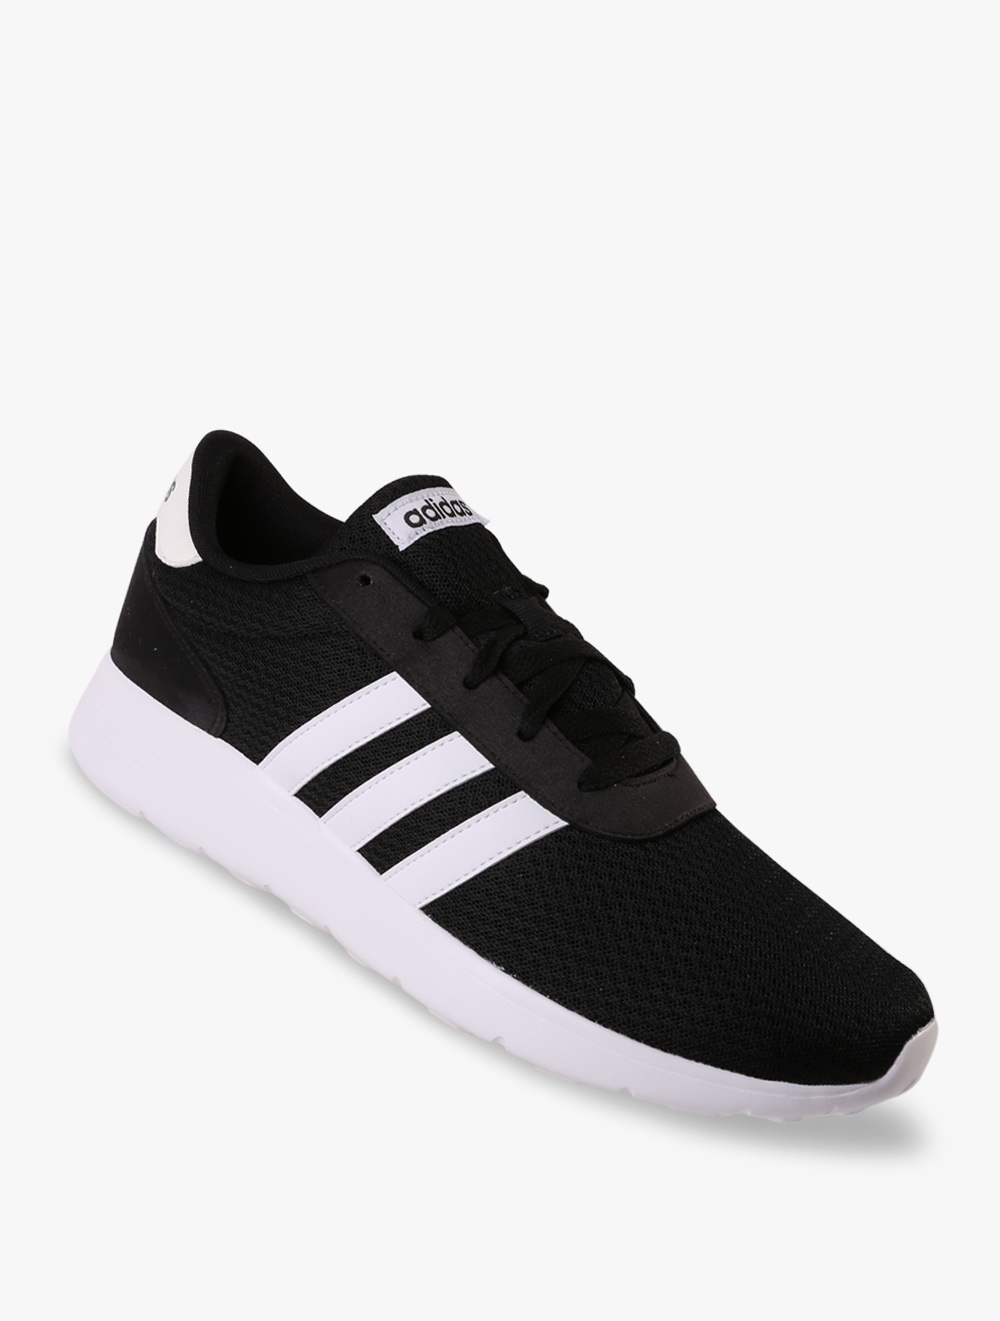 Shop The Latest Sneakers Sneakers Shoes for Men From PLANET